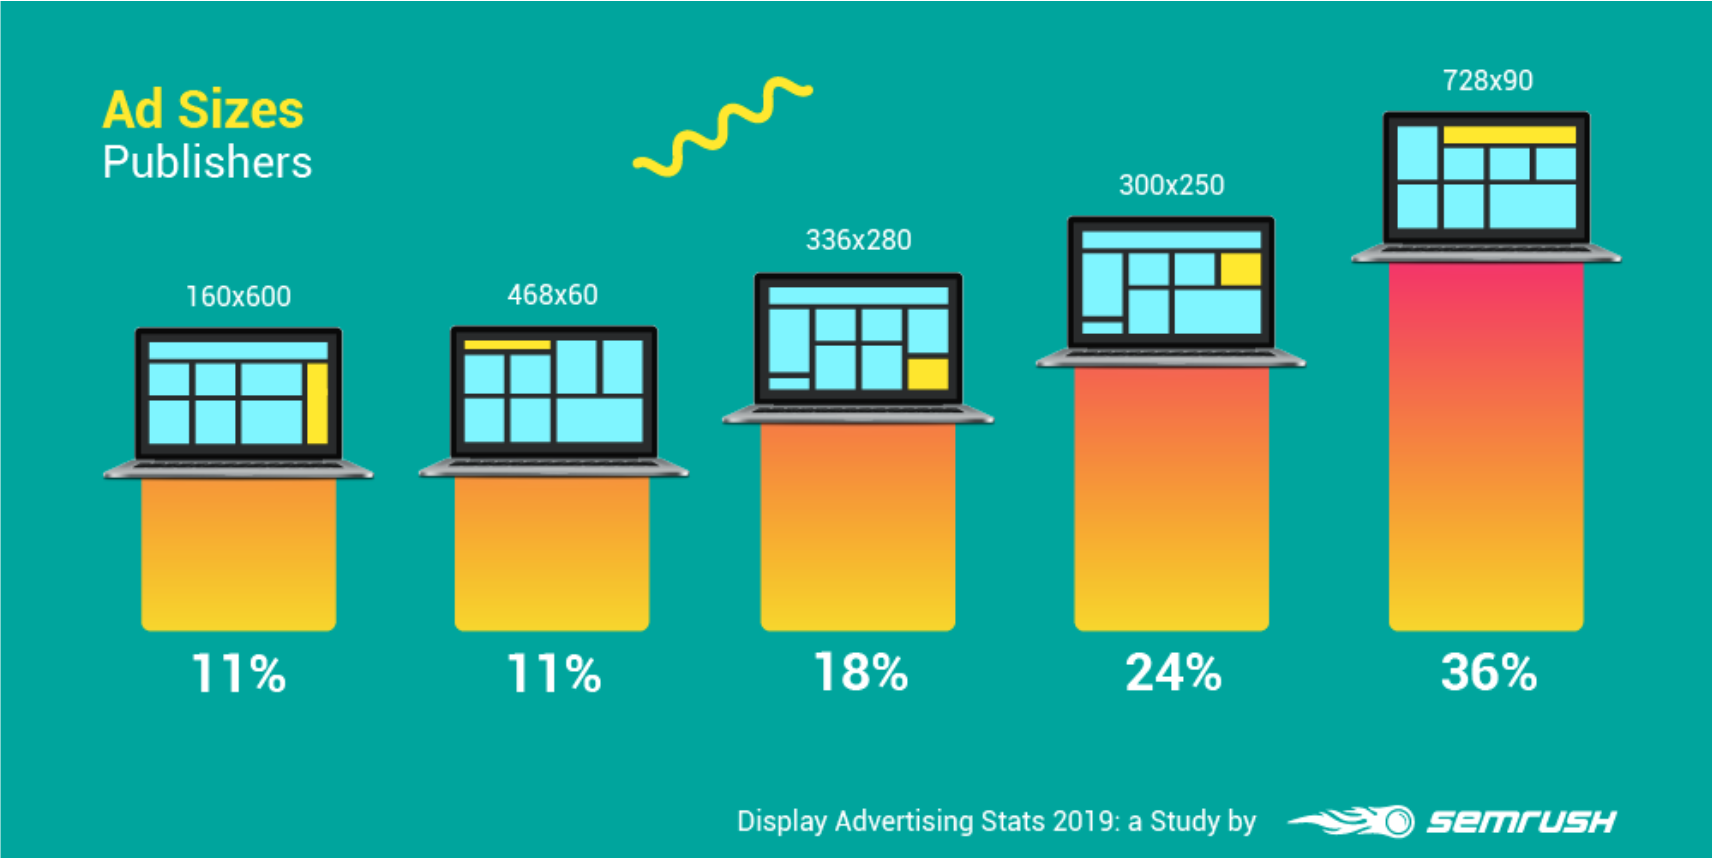 Display Advertising Stats 2019 by SEMrush